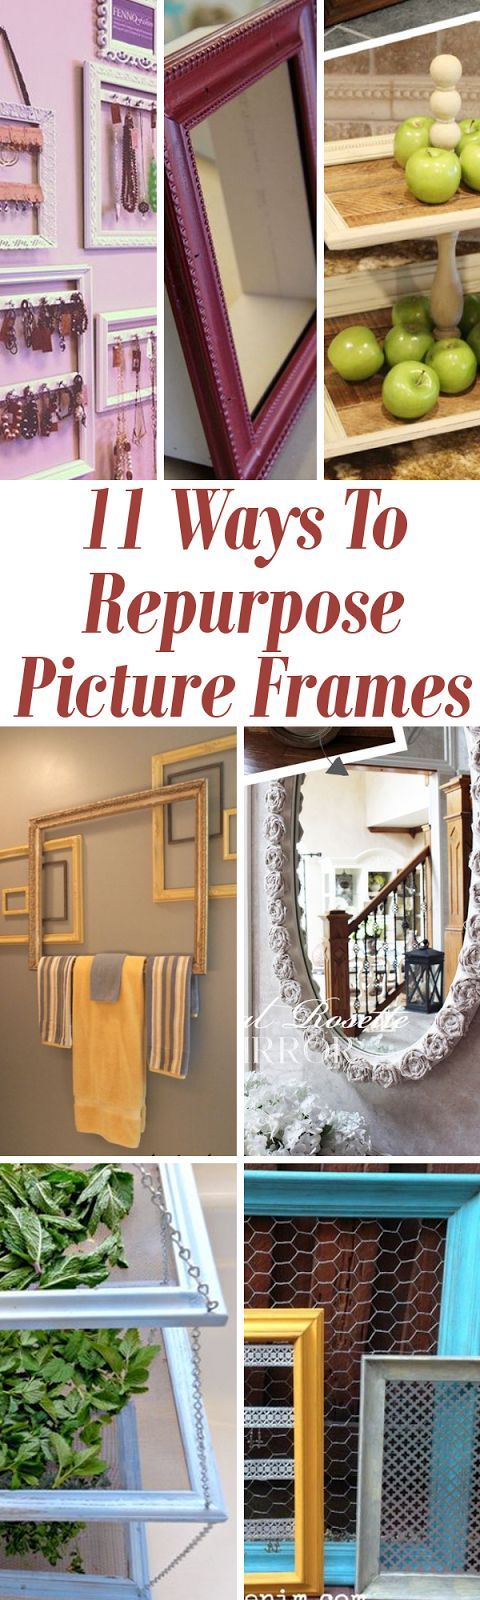 11 Inspiring Uses For Picture Frames 230